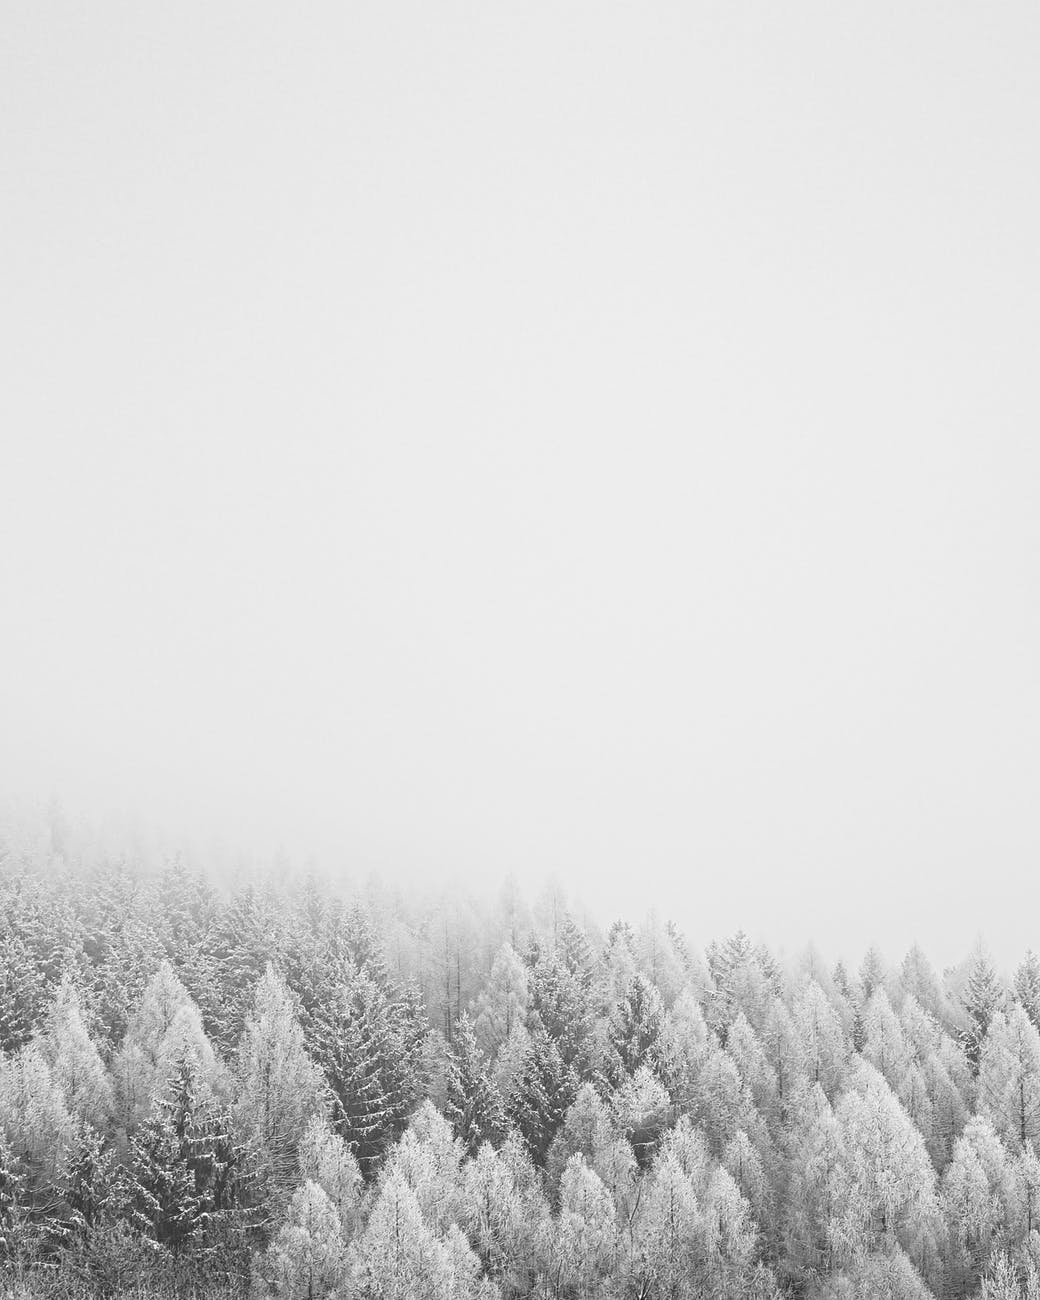 photo of snow covered trees